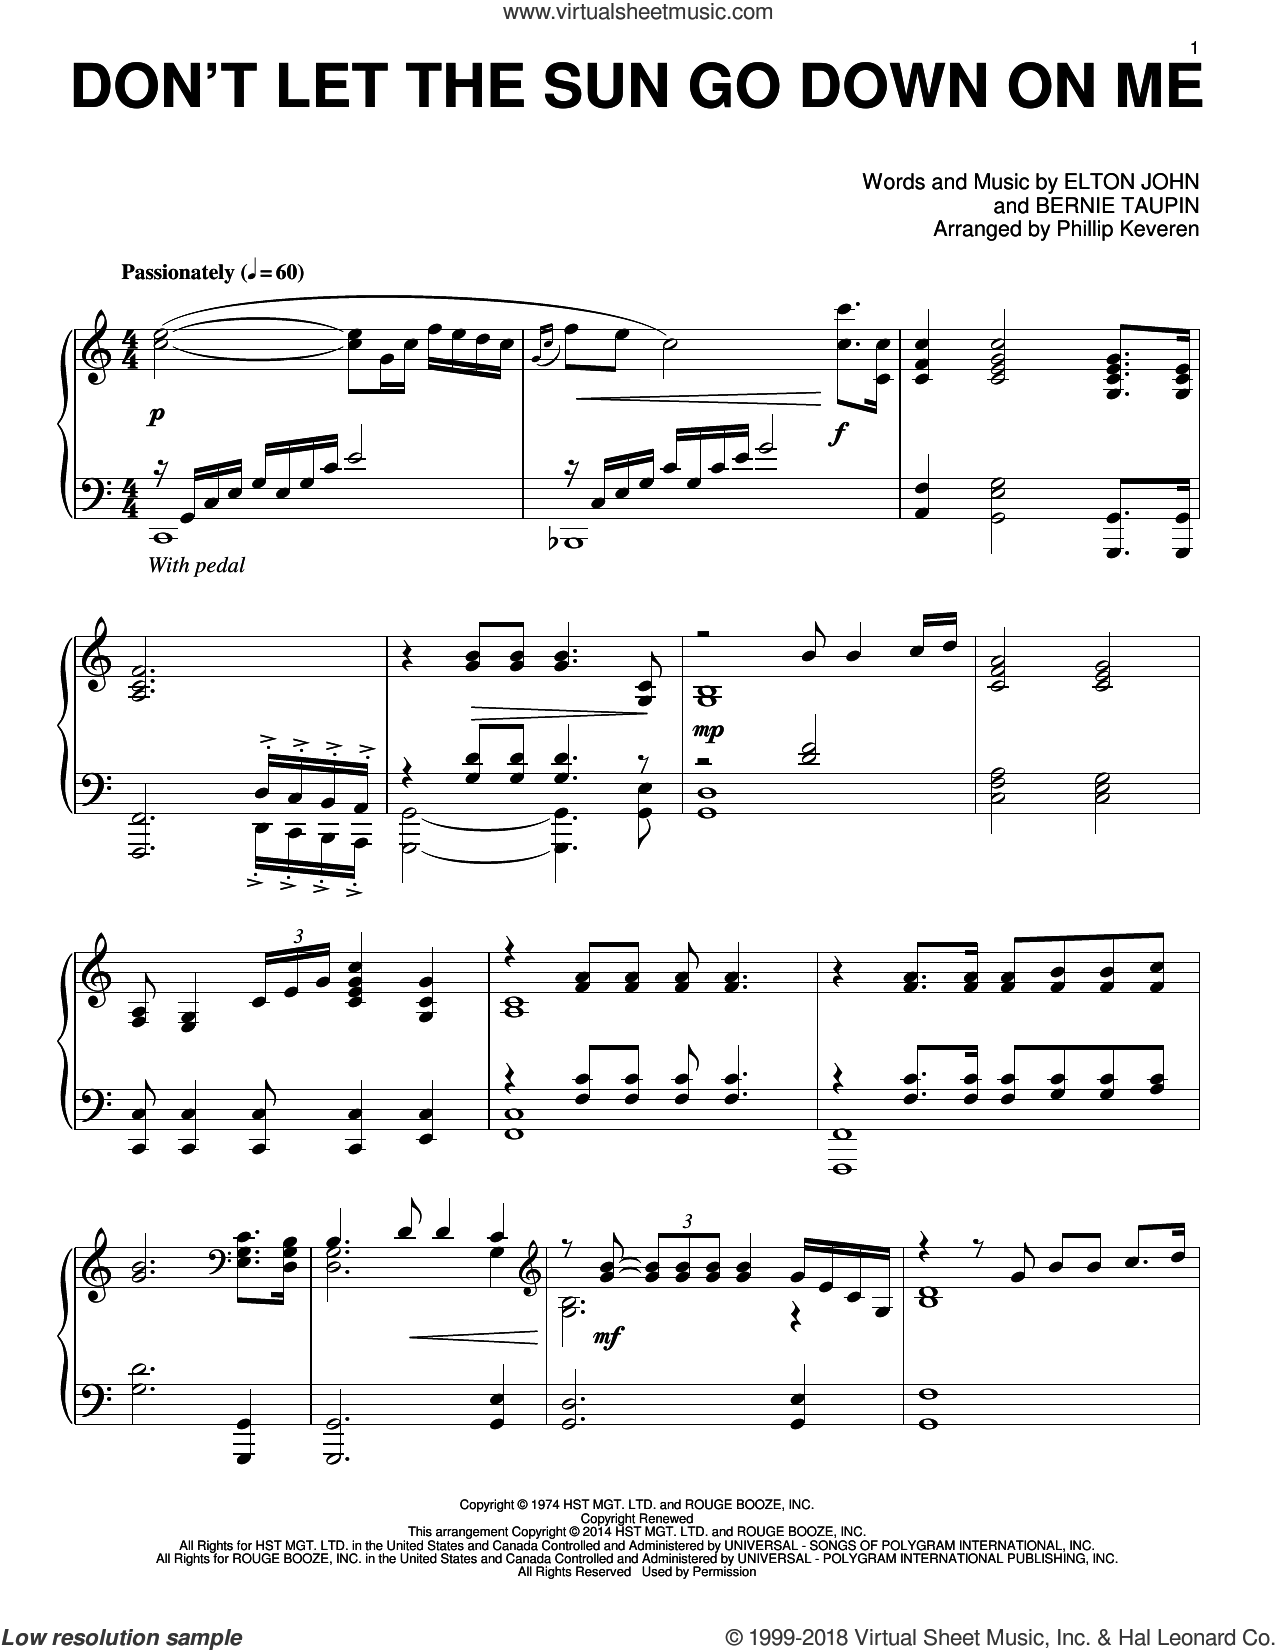 Don't Let The Sun Go Down On Me sheet music for piano solo by Bernie Taupin